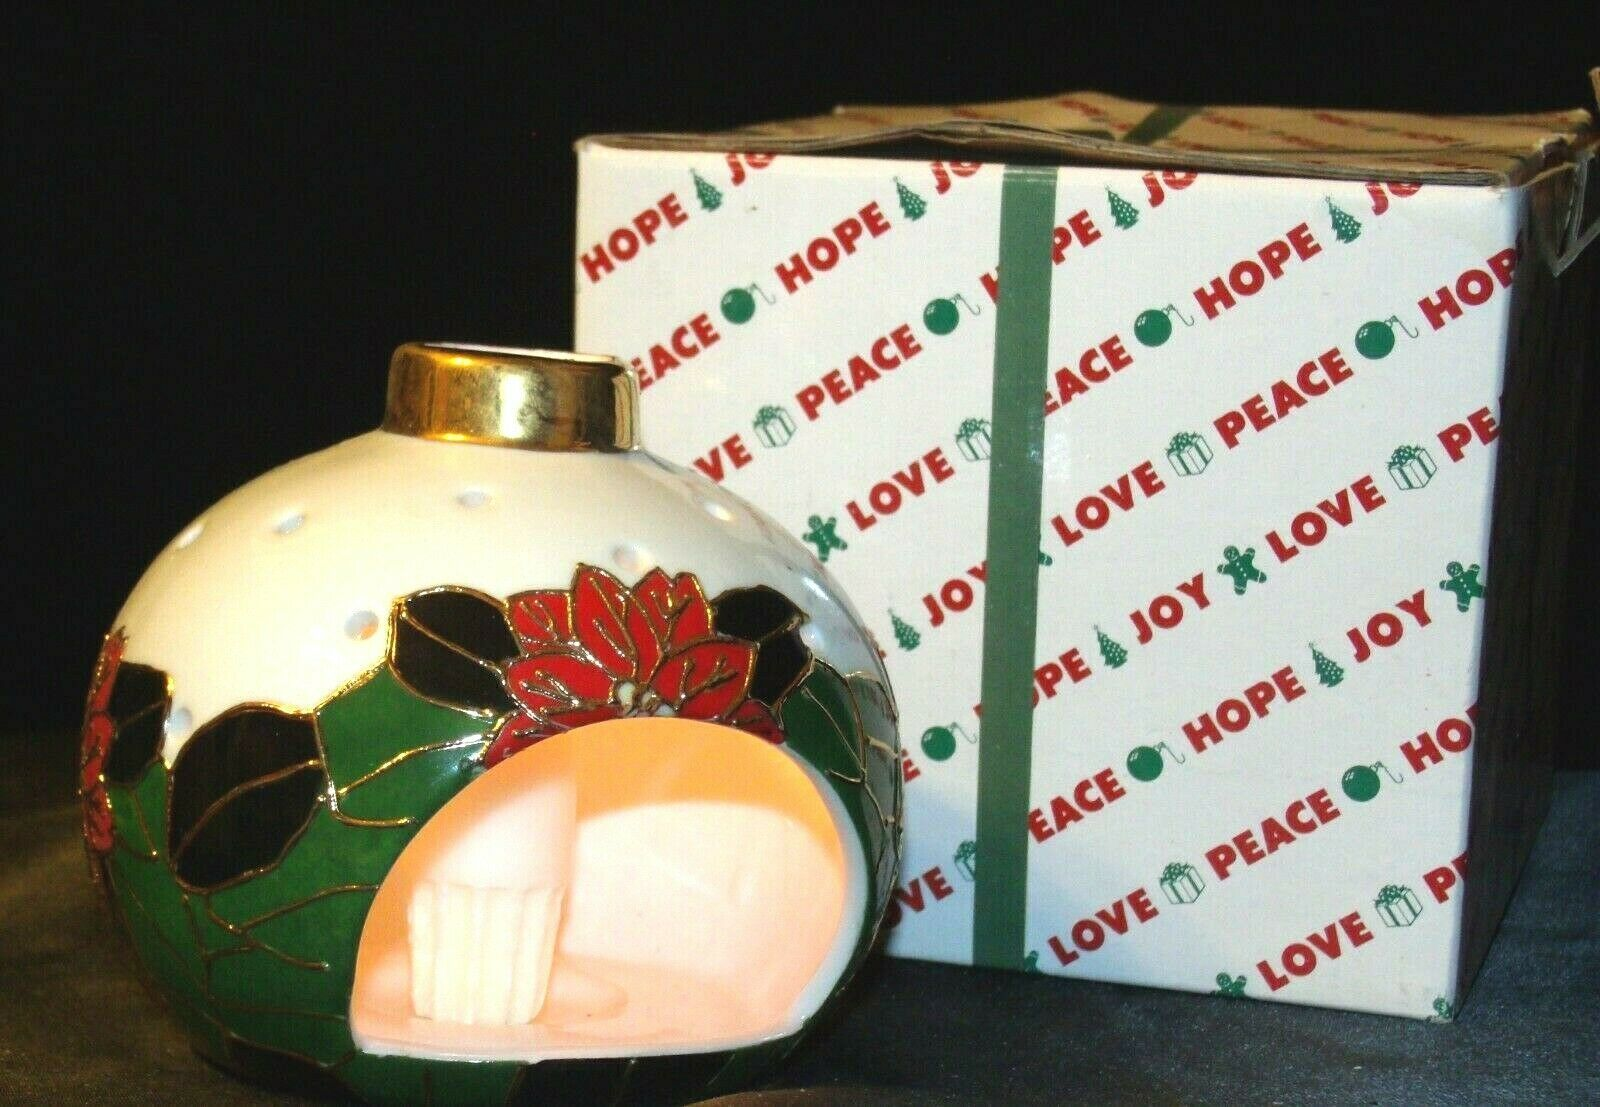 House of Lloyd Christmas Ornament Love Peace Hope AA-191796 Collectible